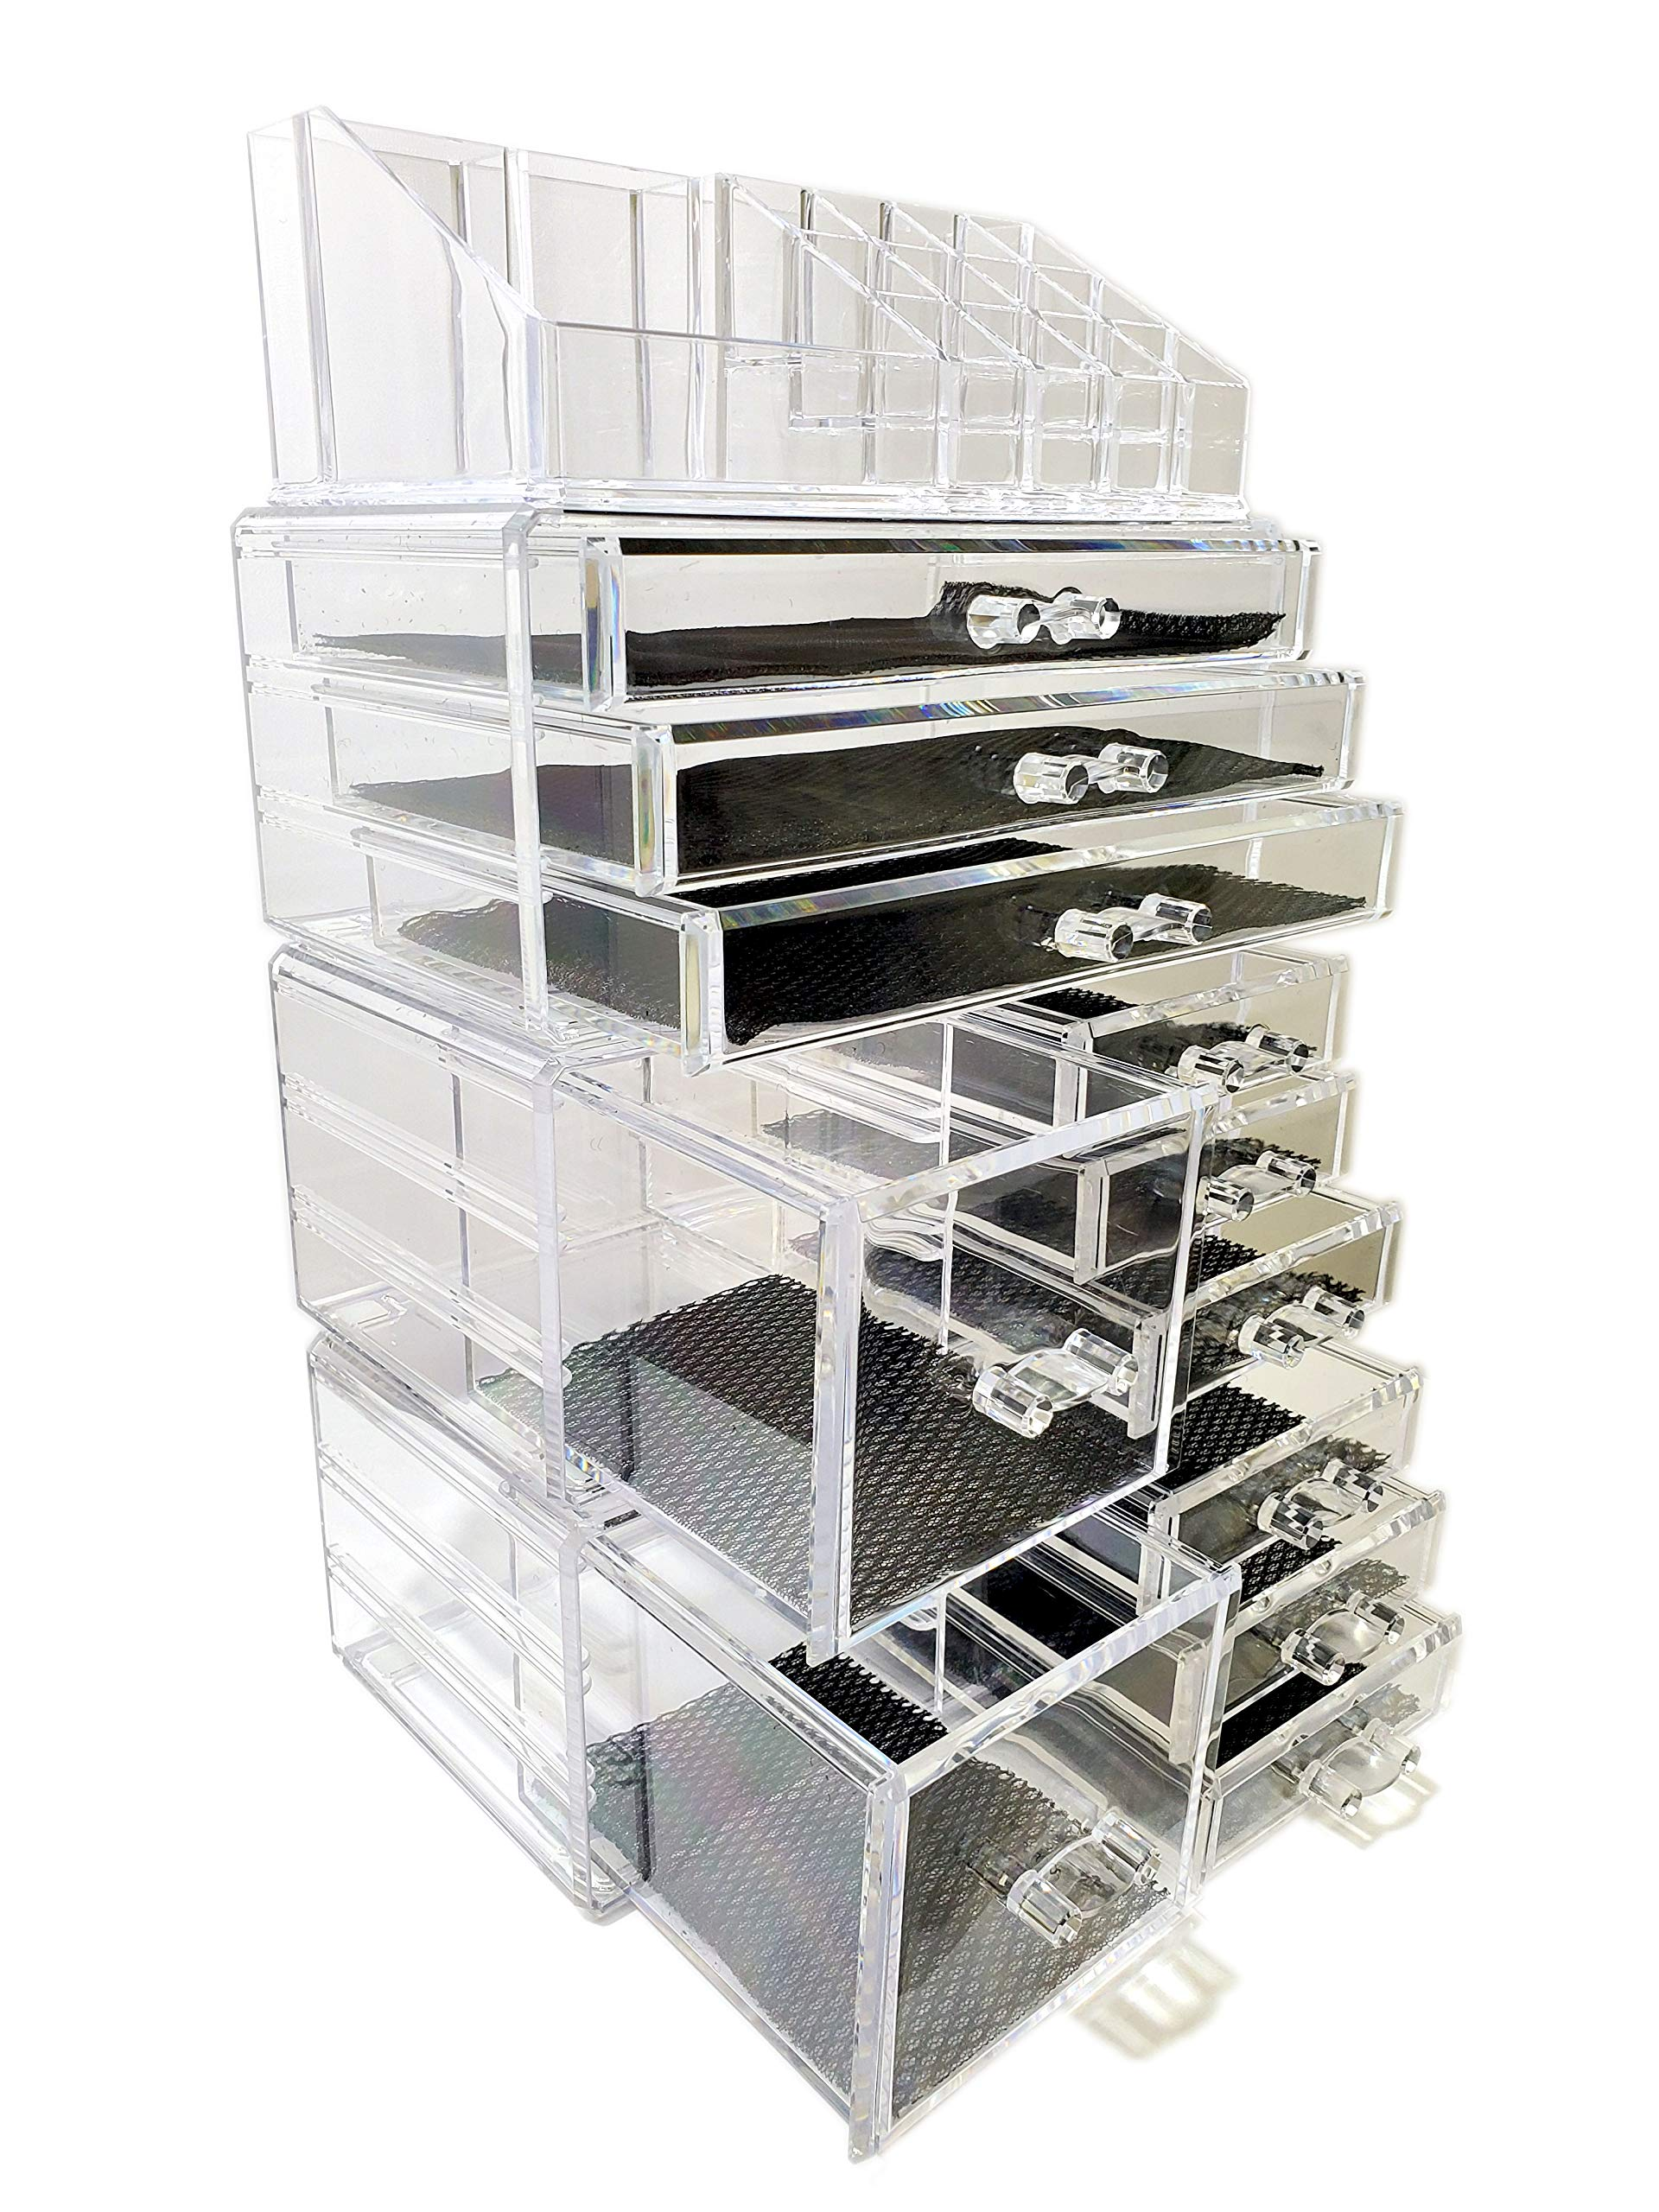 Townhouse Design Acrylic Jewelry & Cosmetic Storage Display Boxes,Makeup Organizer,Stackable and Detacable, 4 Pieces Set by Townhouse